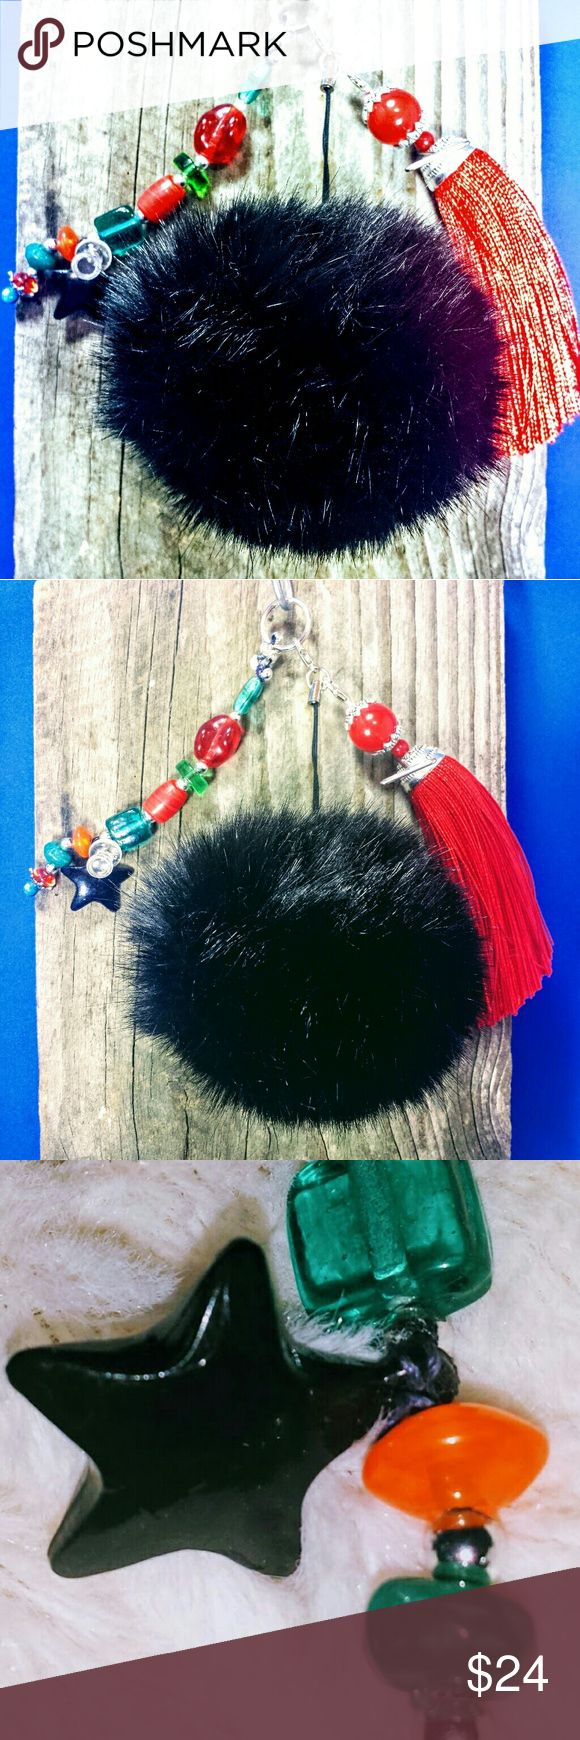 XL Designer Pompom: Black Fur & Italian Glass Work XL Designer Statement PomPom Furball Handbag Charm Keyring Charm with hand selected silver findings, italian glass beadwork in ruby, seaglass,aqua, coral, and a black star with 5 inch Ruby Red tassle to make for the most luxurious PomPom I offer - Black (8cm) #pompom #bagcharm #keyring #gift #gucci #kylie Accessories Key & Card Holders